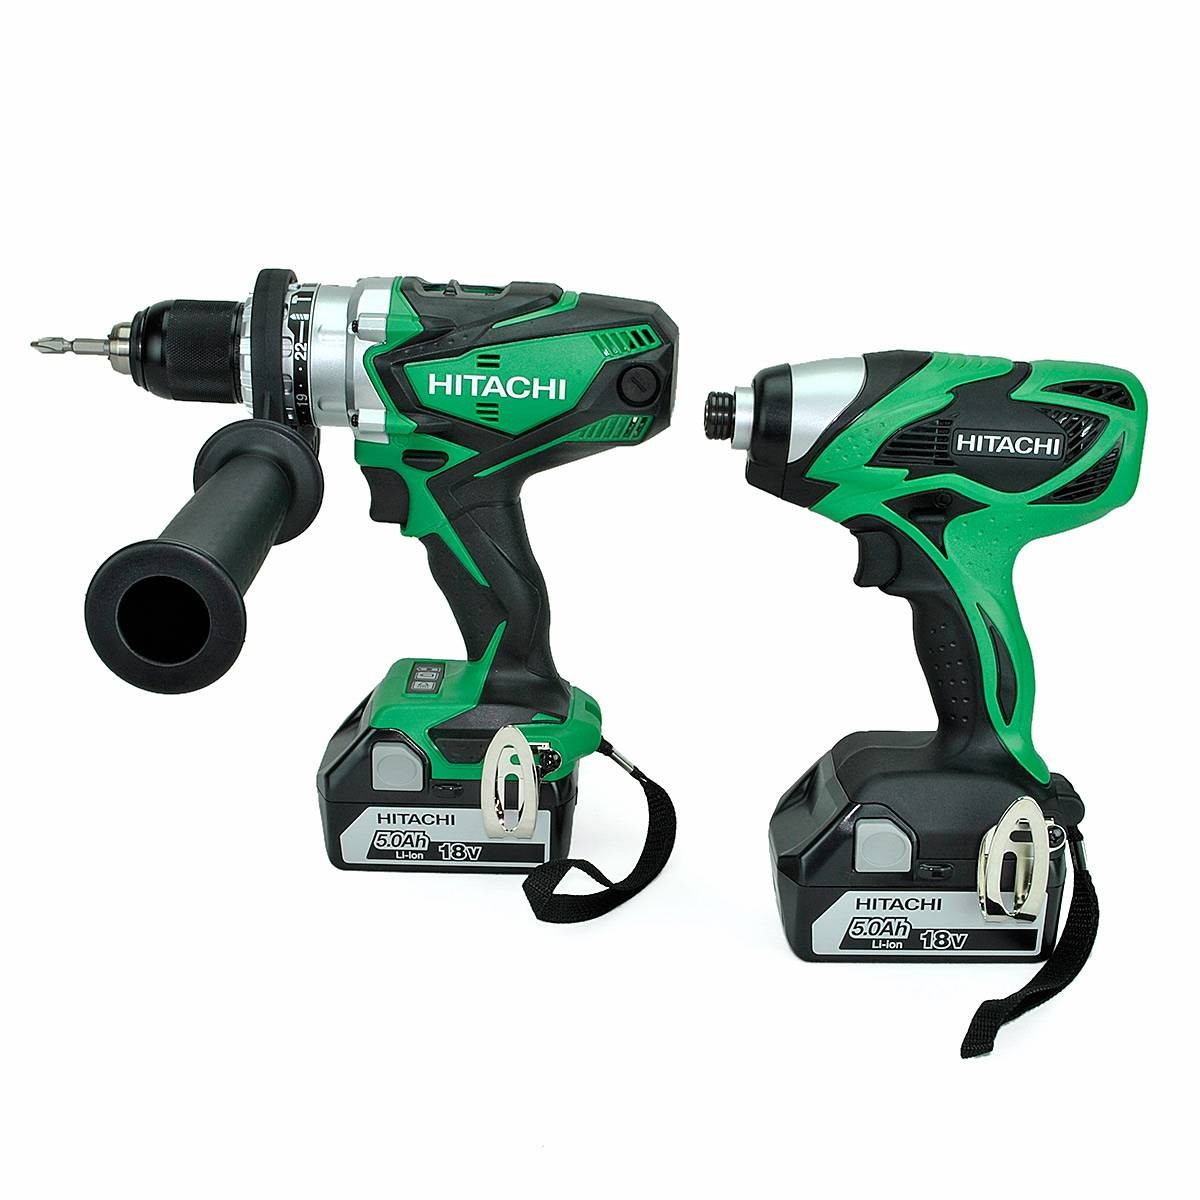 hitachi kc18dkl 18v combi drill impact driver kit 2x5ah. Black Bedroom Furniture Sets. Home Design Ideas